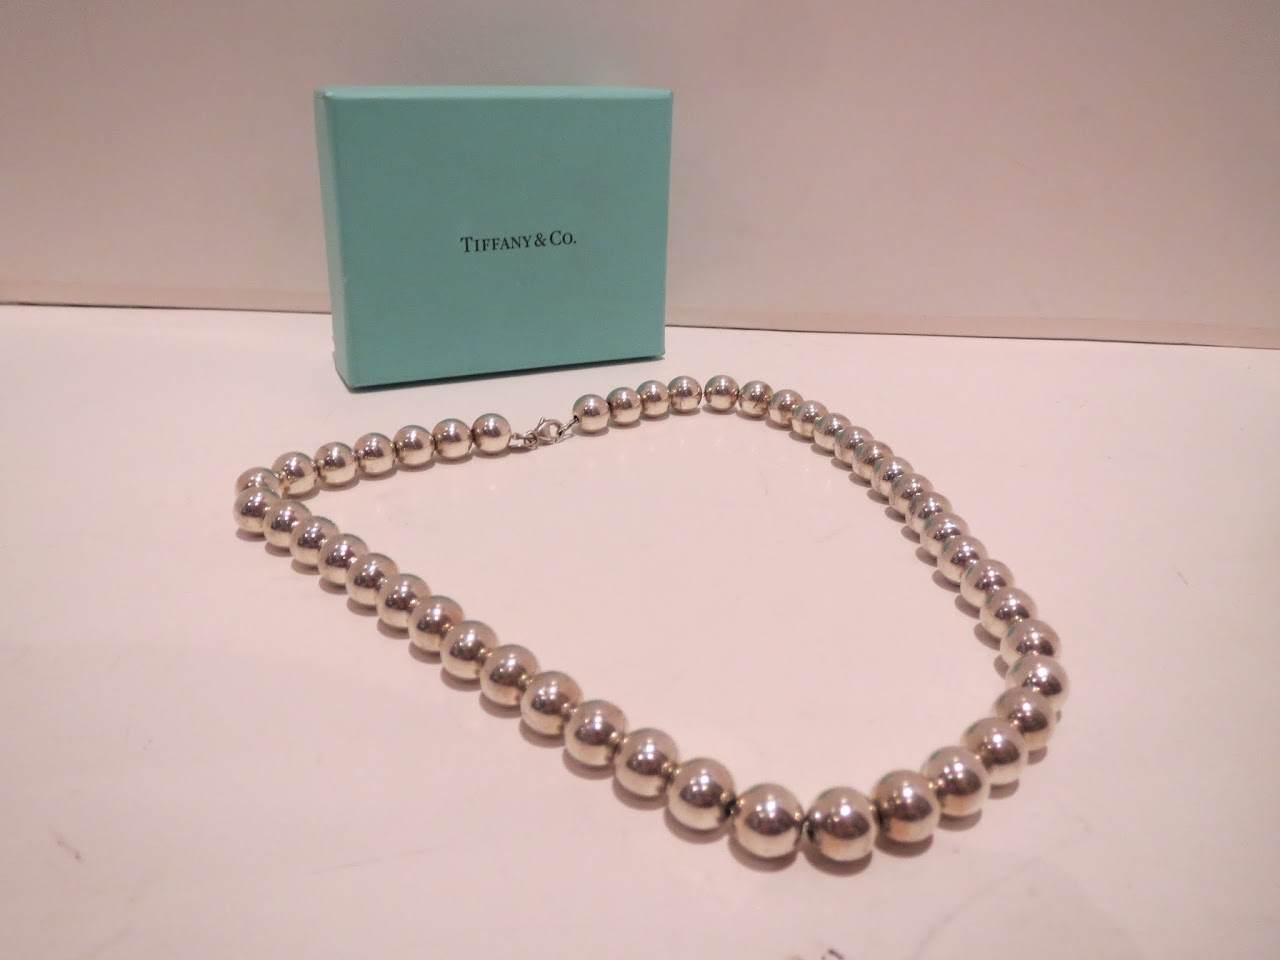 Tiffany & Co. Sterling Silver Ball Necklace